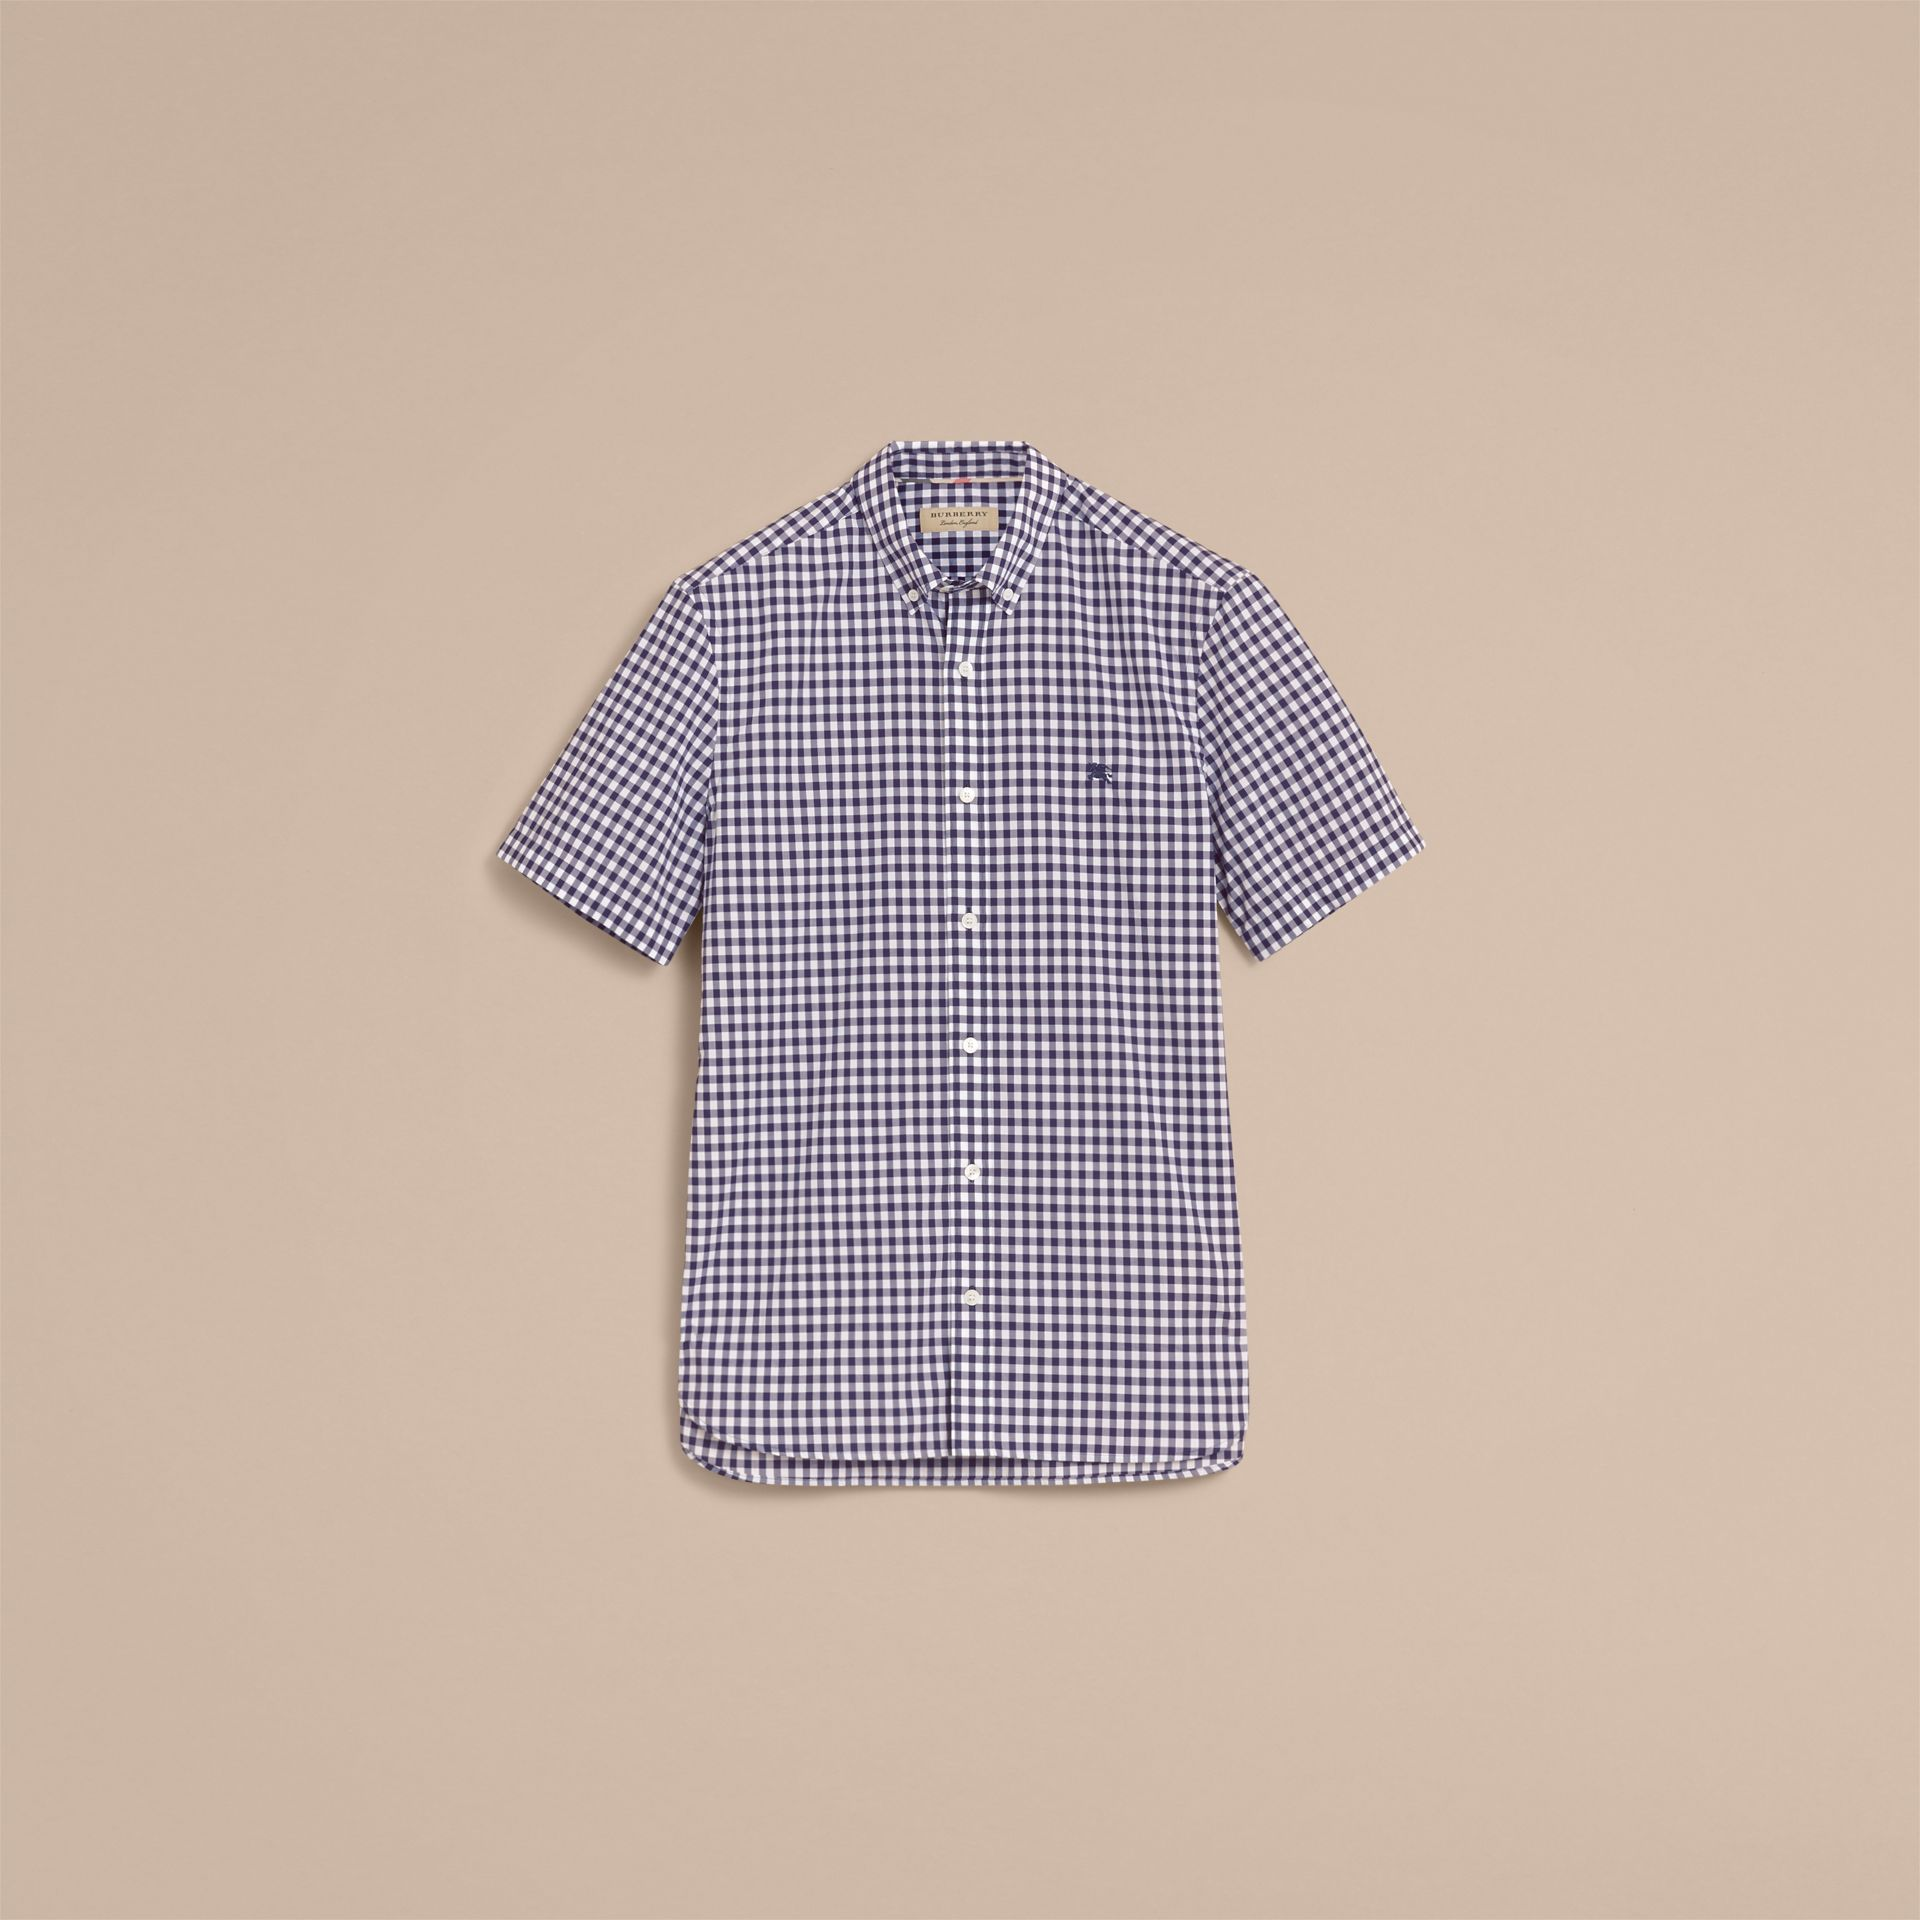 Short-sleeve Button-down Collar Cotton Gingham Shirt in Navy - Men | Burberry Canada - gallery image 4